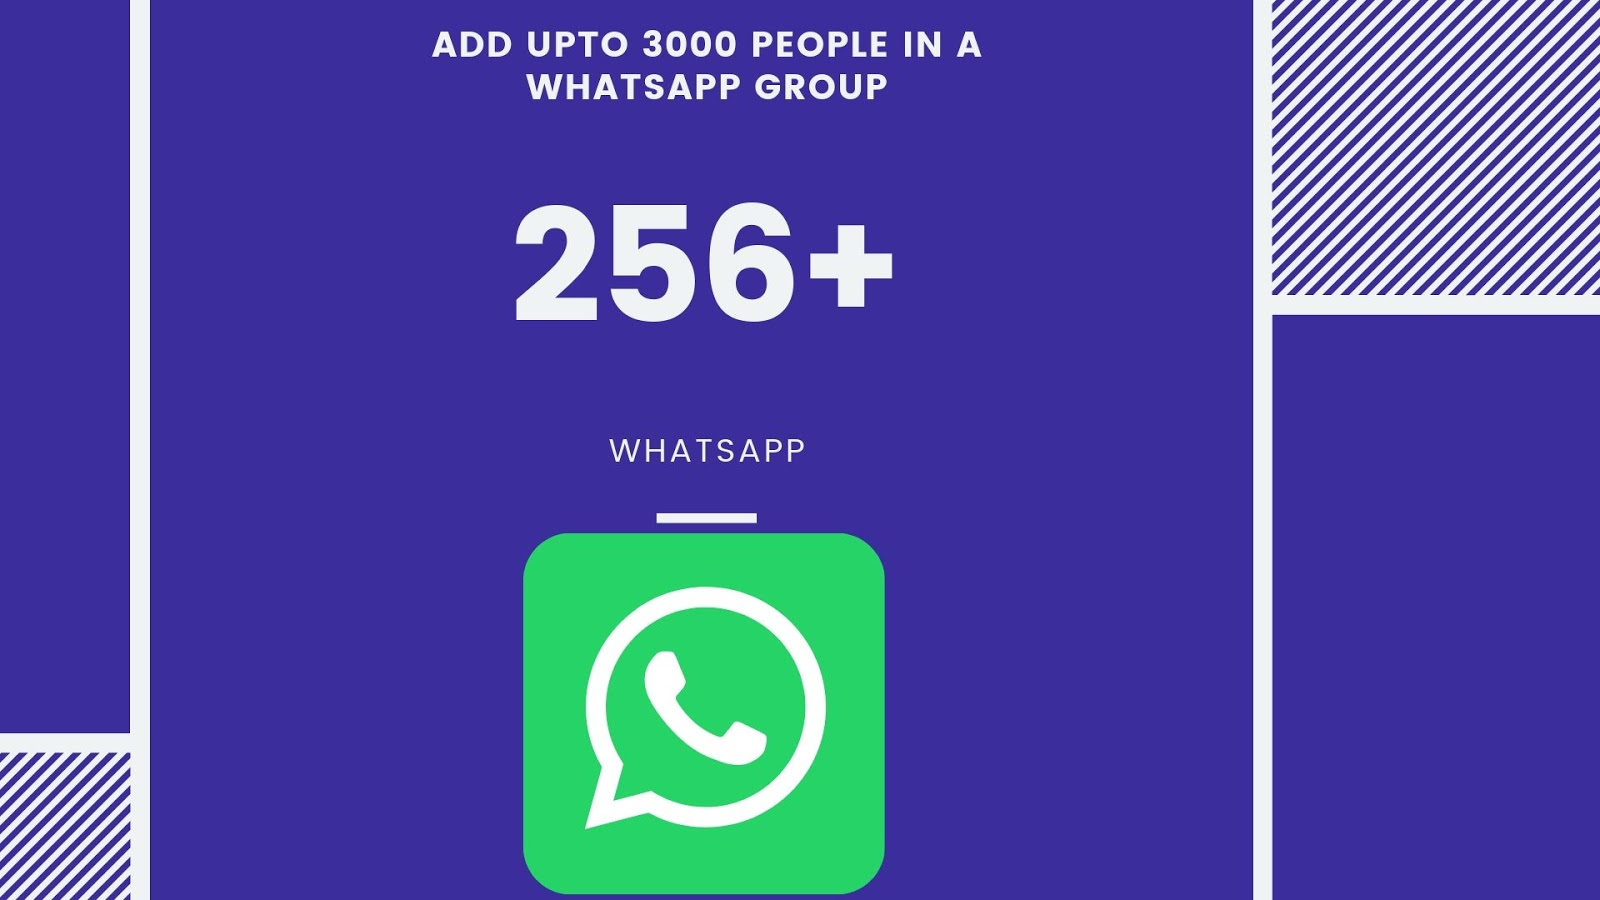 3000 people in a WhatsApp Group